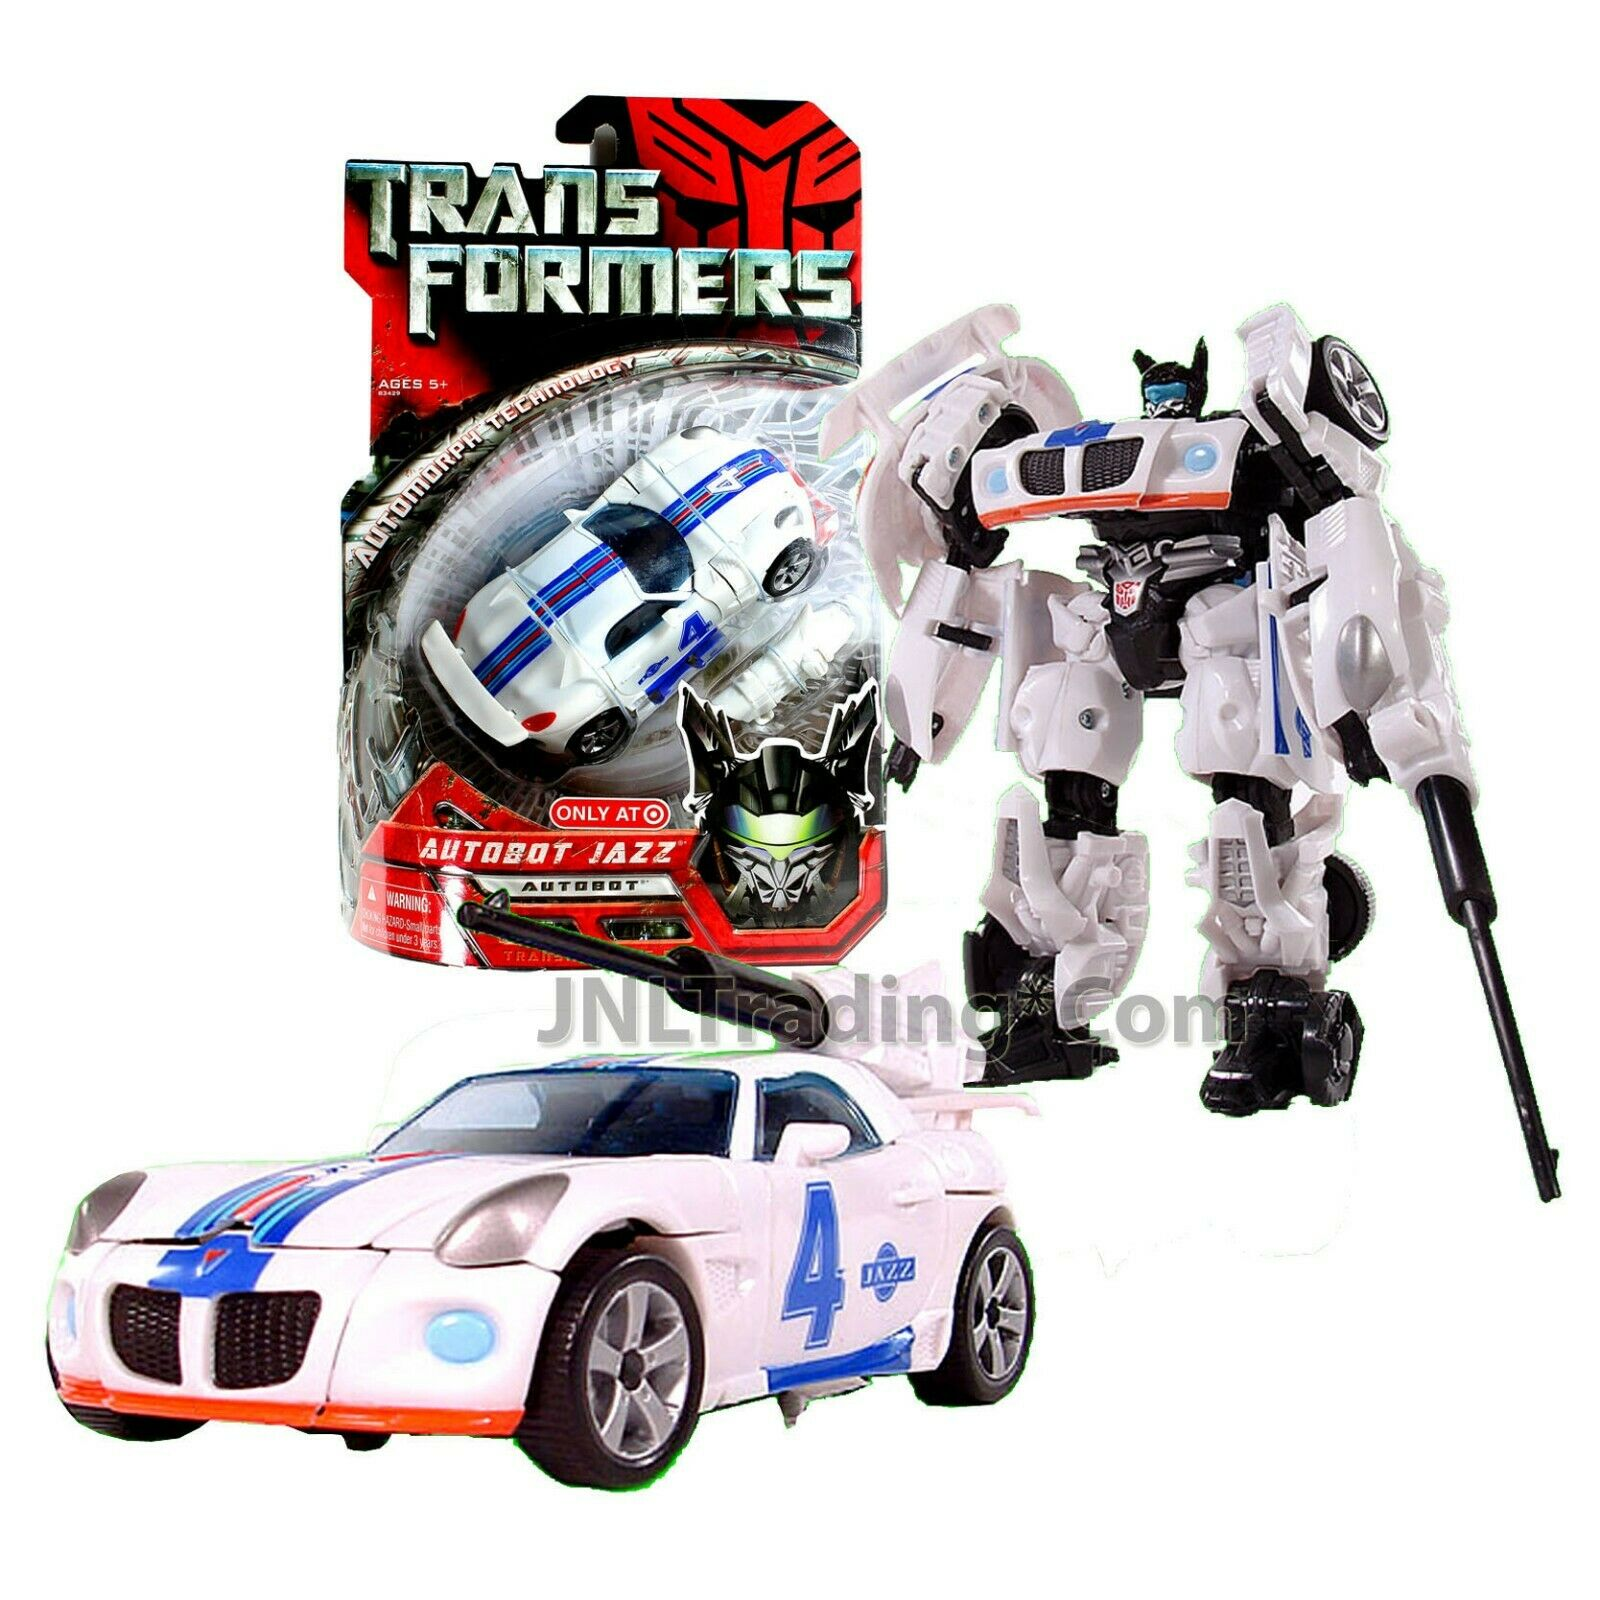 Year 2007 Hasbro Transformers 1st Movie Exclusive Deluxe classe 6 Autobot Jazz